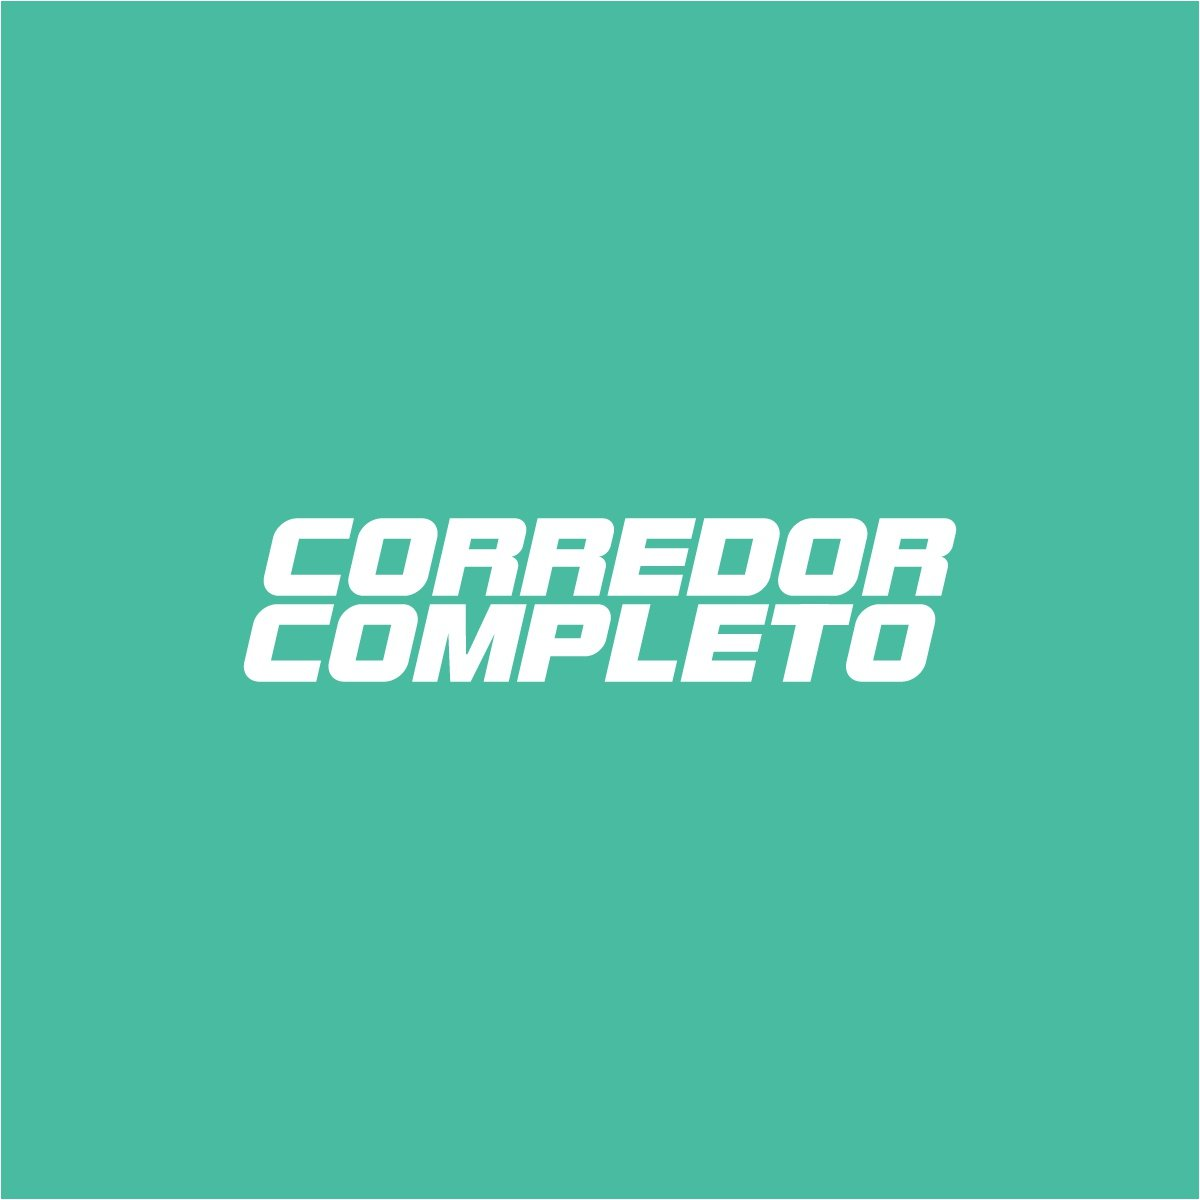 corredor-completo.png.1200x1200_q95_crop_upscale.jpg